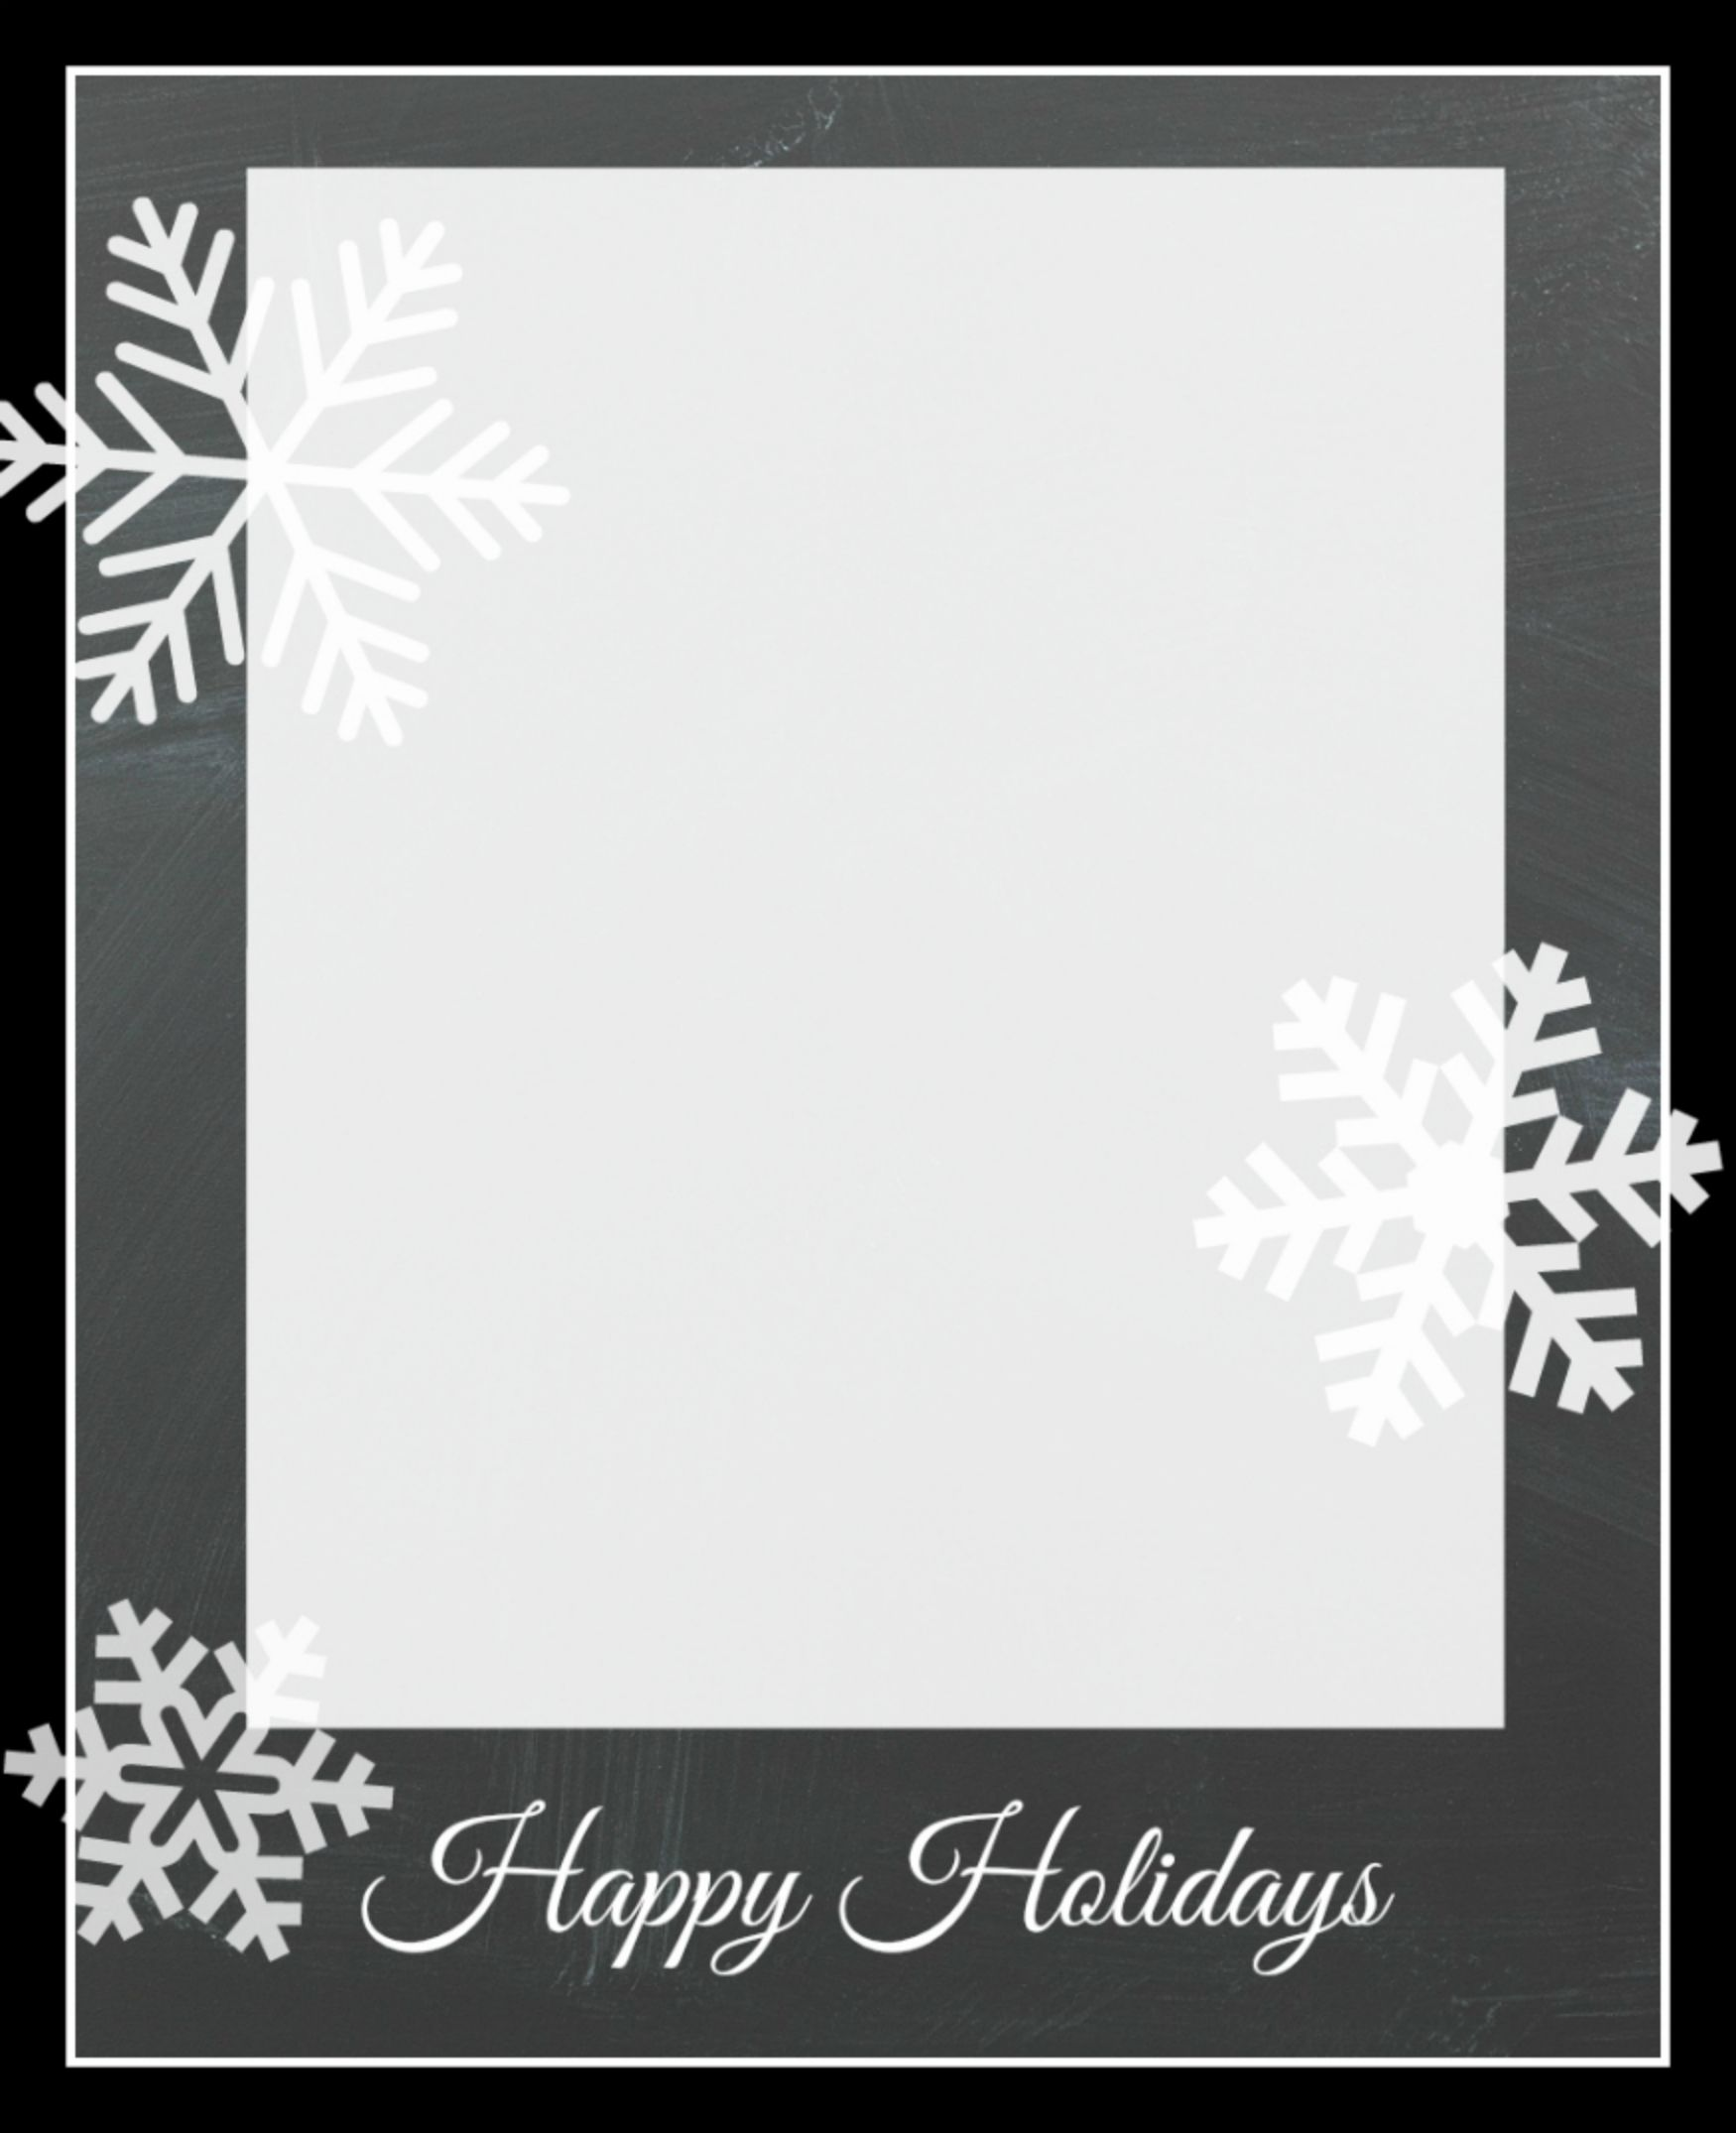 010 Remarkable Free Photo Card Template Idea  Printable Holiday Christma DownloadFull